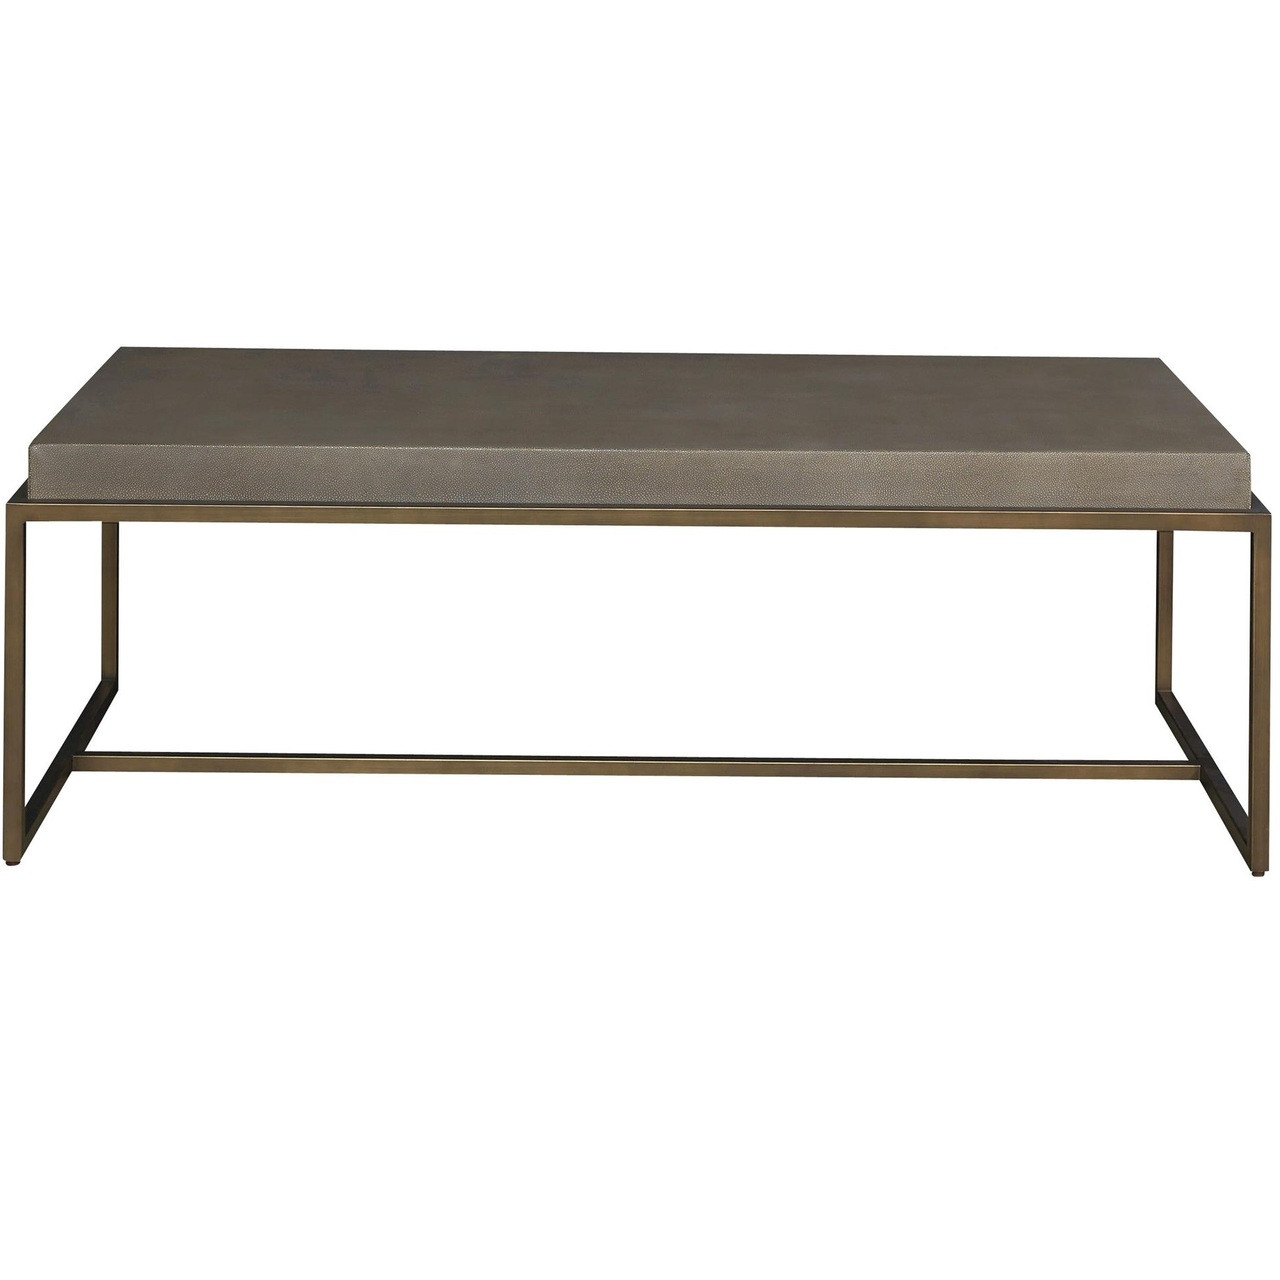 Portobello modern shagreen coffee table brushed bronze zin home portobello modern shagreen bronze coffee table geotapseo Image collections